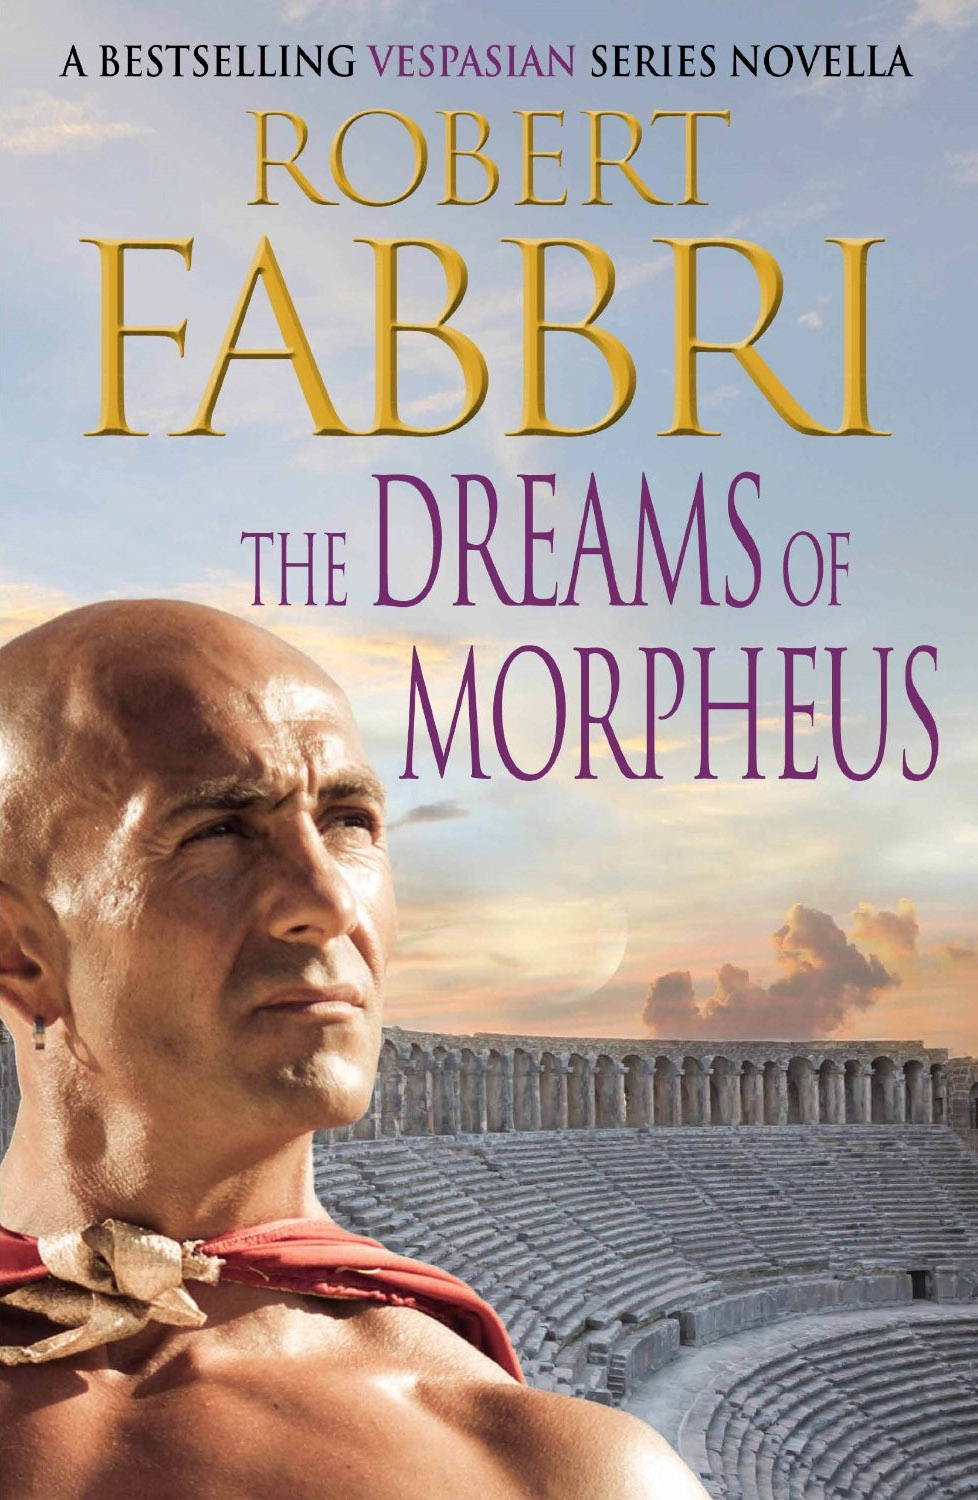 The Dreams of Morpheus